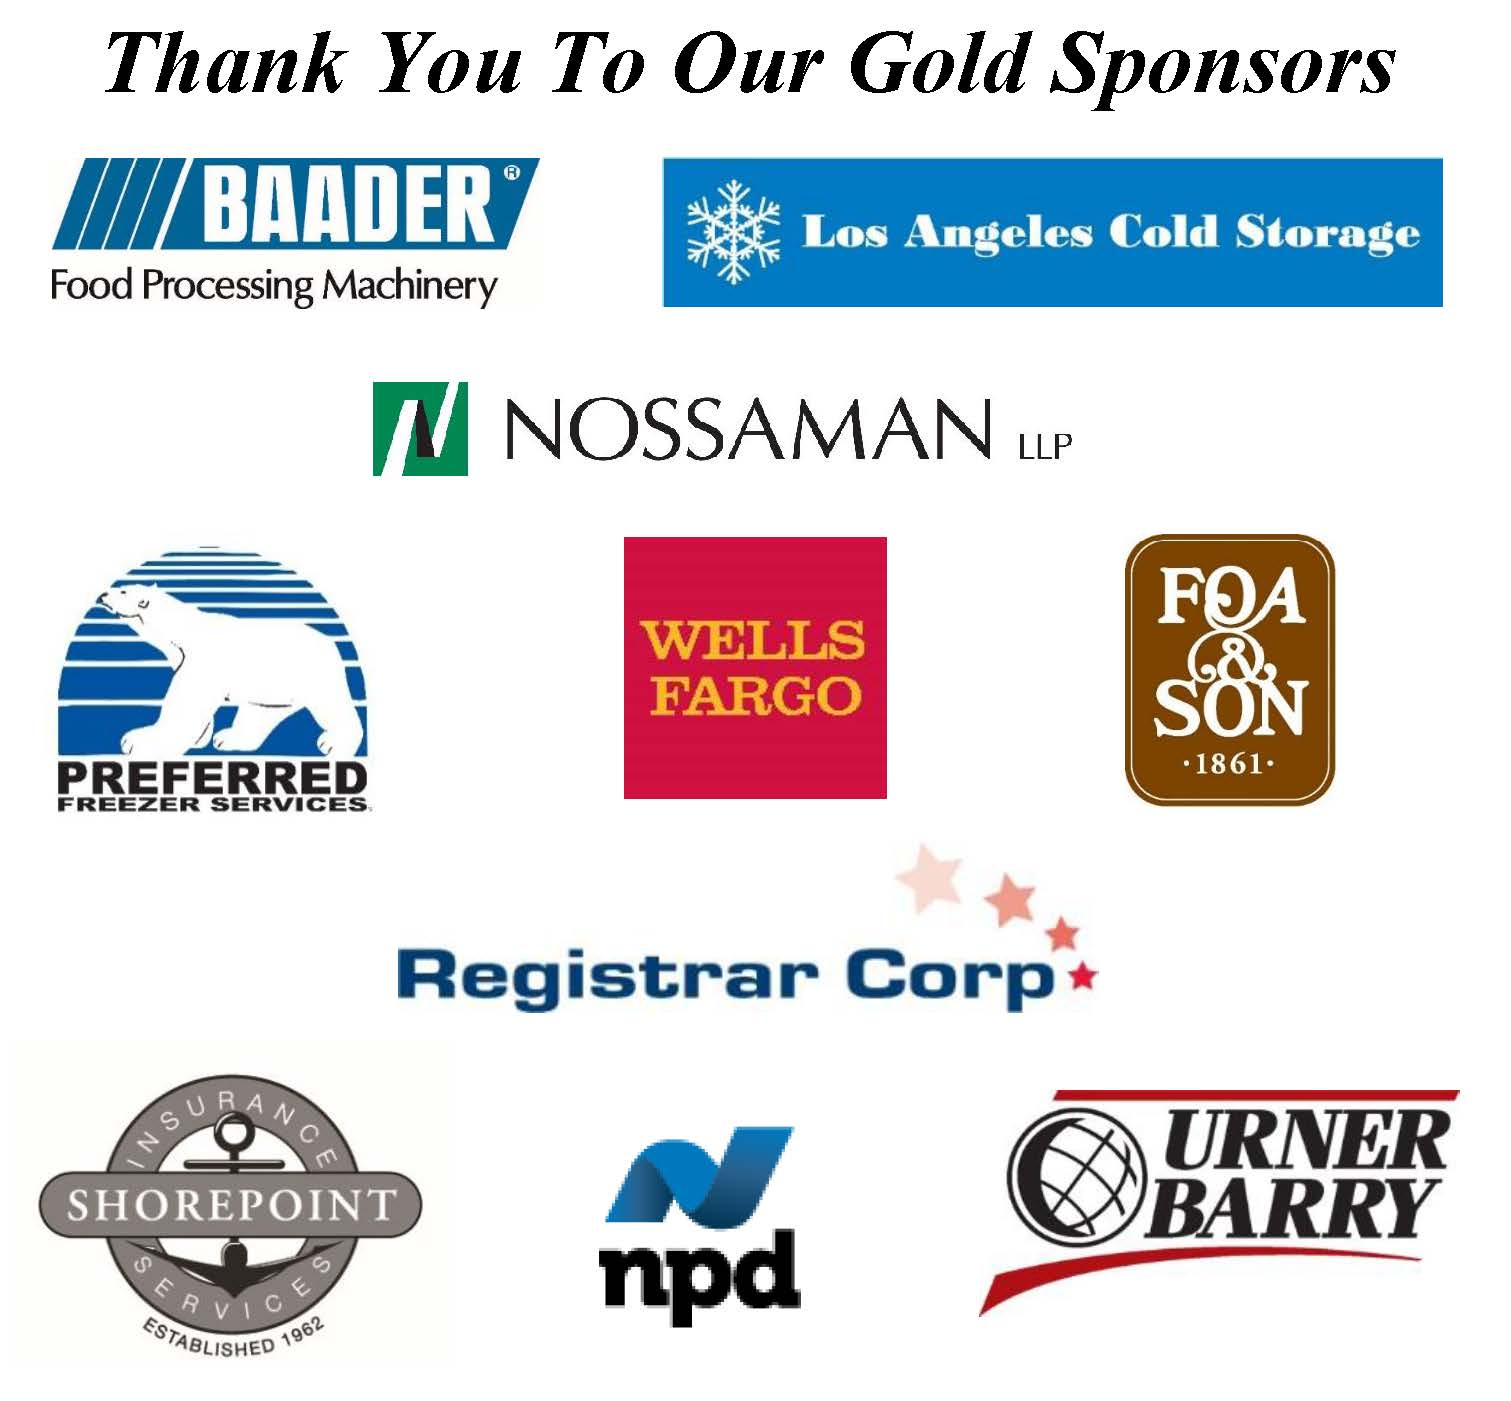 Thank you to our Gold Sponsors_2018